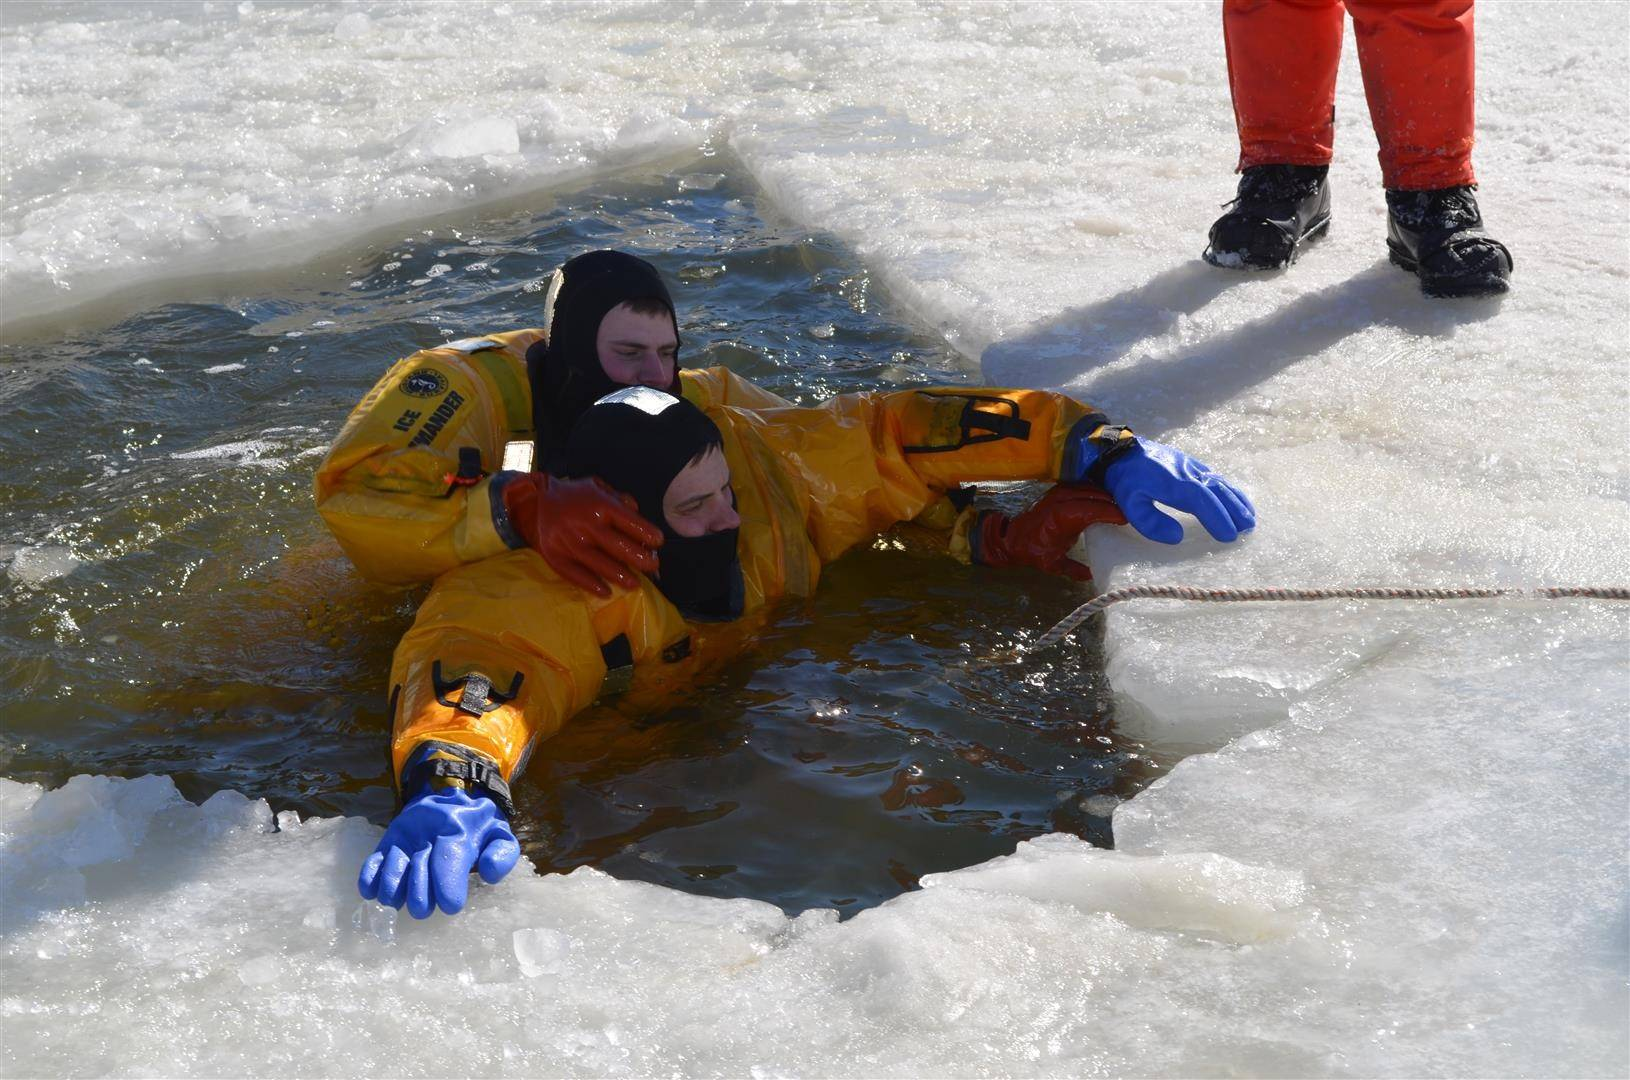 Fire personnel from multiple departments practice ice rescues under hazardous conditions.